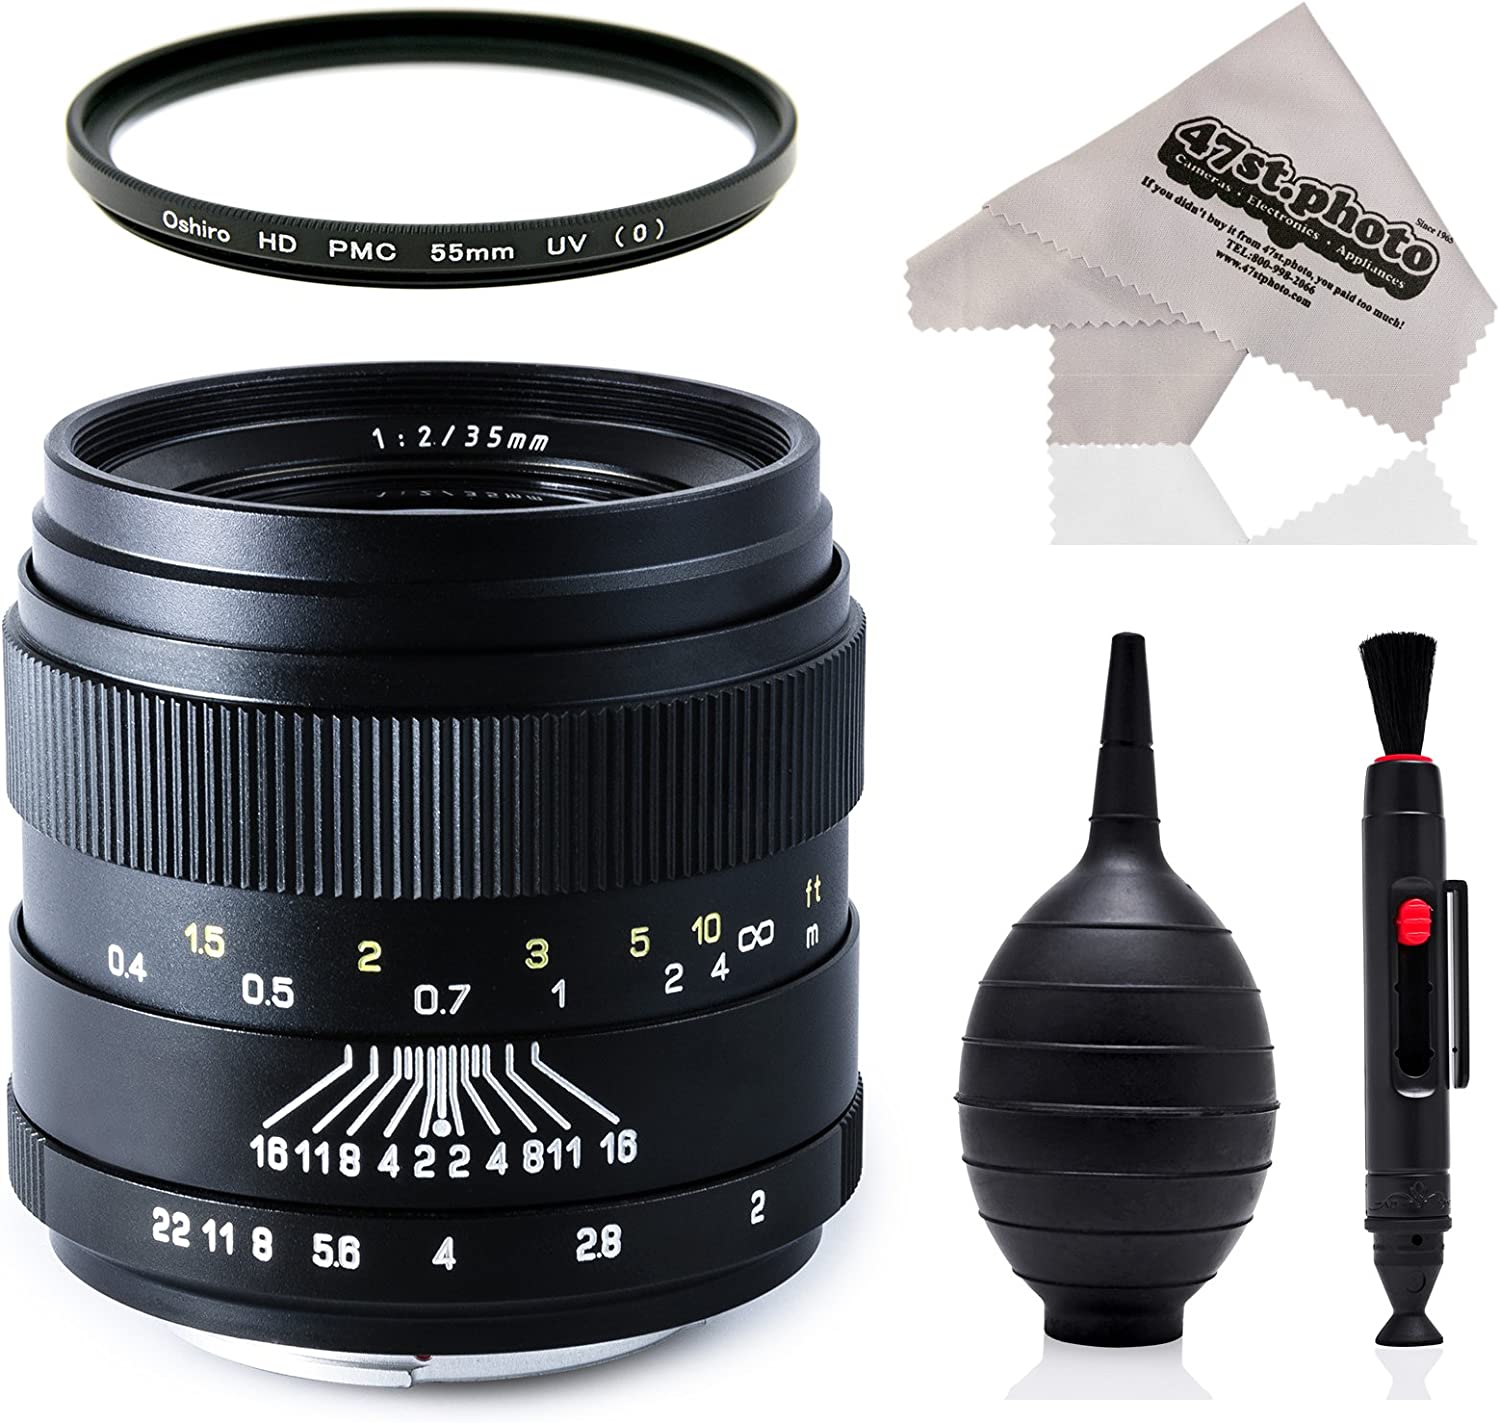 T6i 1Ds 50D 7D 6D T3i 60Da 60D T6 T5i Rebel T6s 70D T3 and SL1 Digital SLR Cameras 5Ds 5D T5 Oshiro 35mm f//2 LD UNC AL Wide Angle Full Frame Prime Lens with UV for Canon EOS 80D T4i